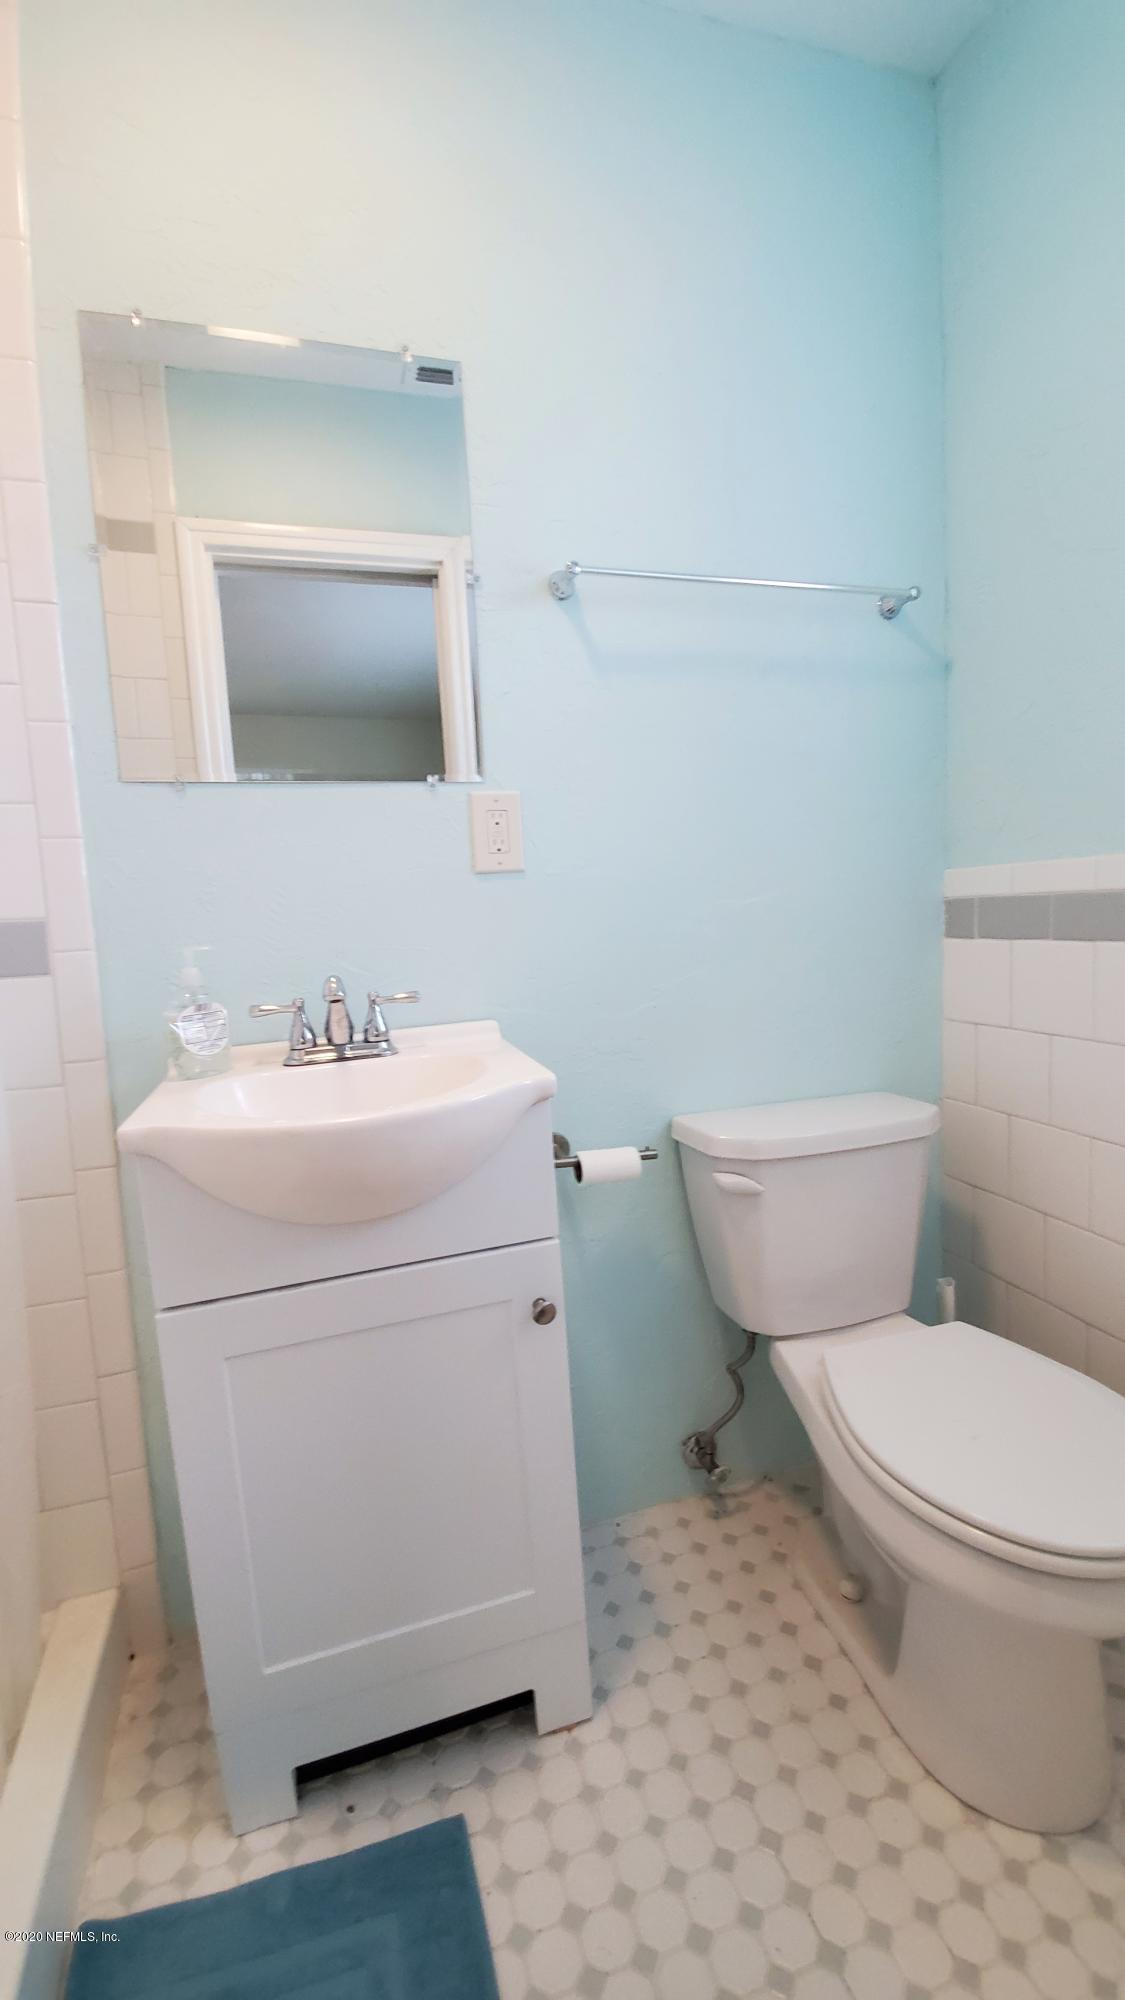 1225 4TH, JACKSONVILLE BEACH, FLORIDA 32250, 3 Bedrooms Bedrooms, ,2 BathroomsBathrooms,Residential,For sale,4TH,1067411